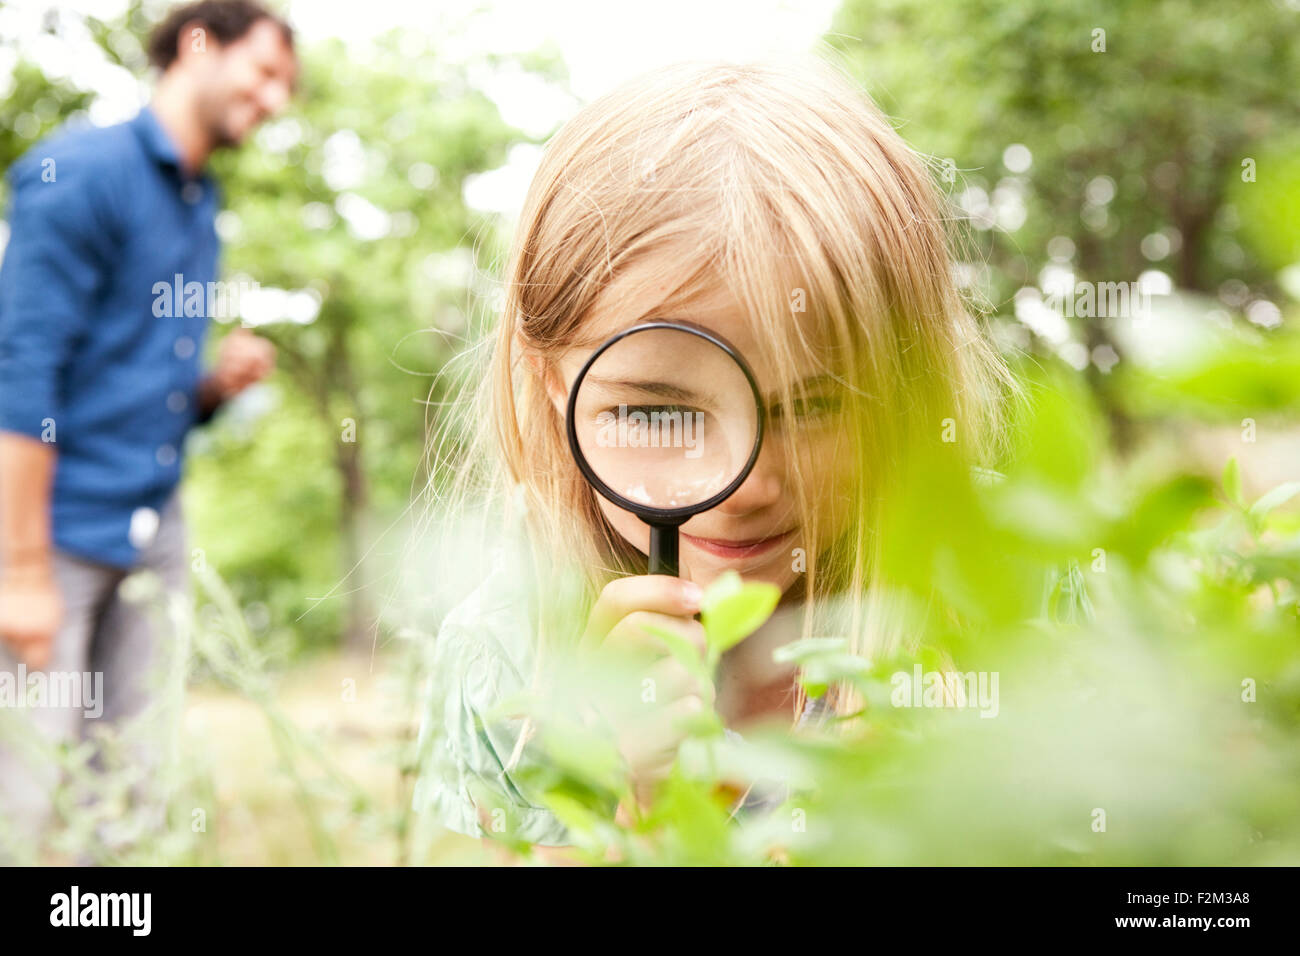 Girl in the nature looking through magnifying glass - Stock Image